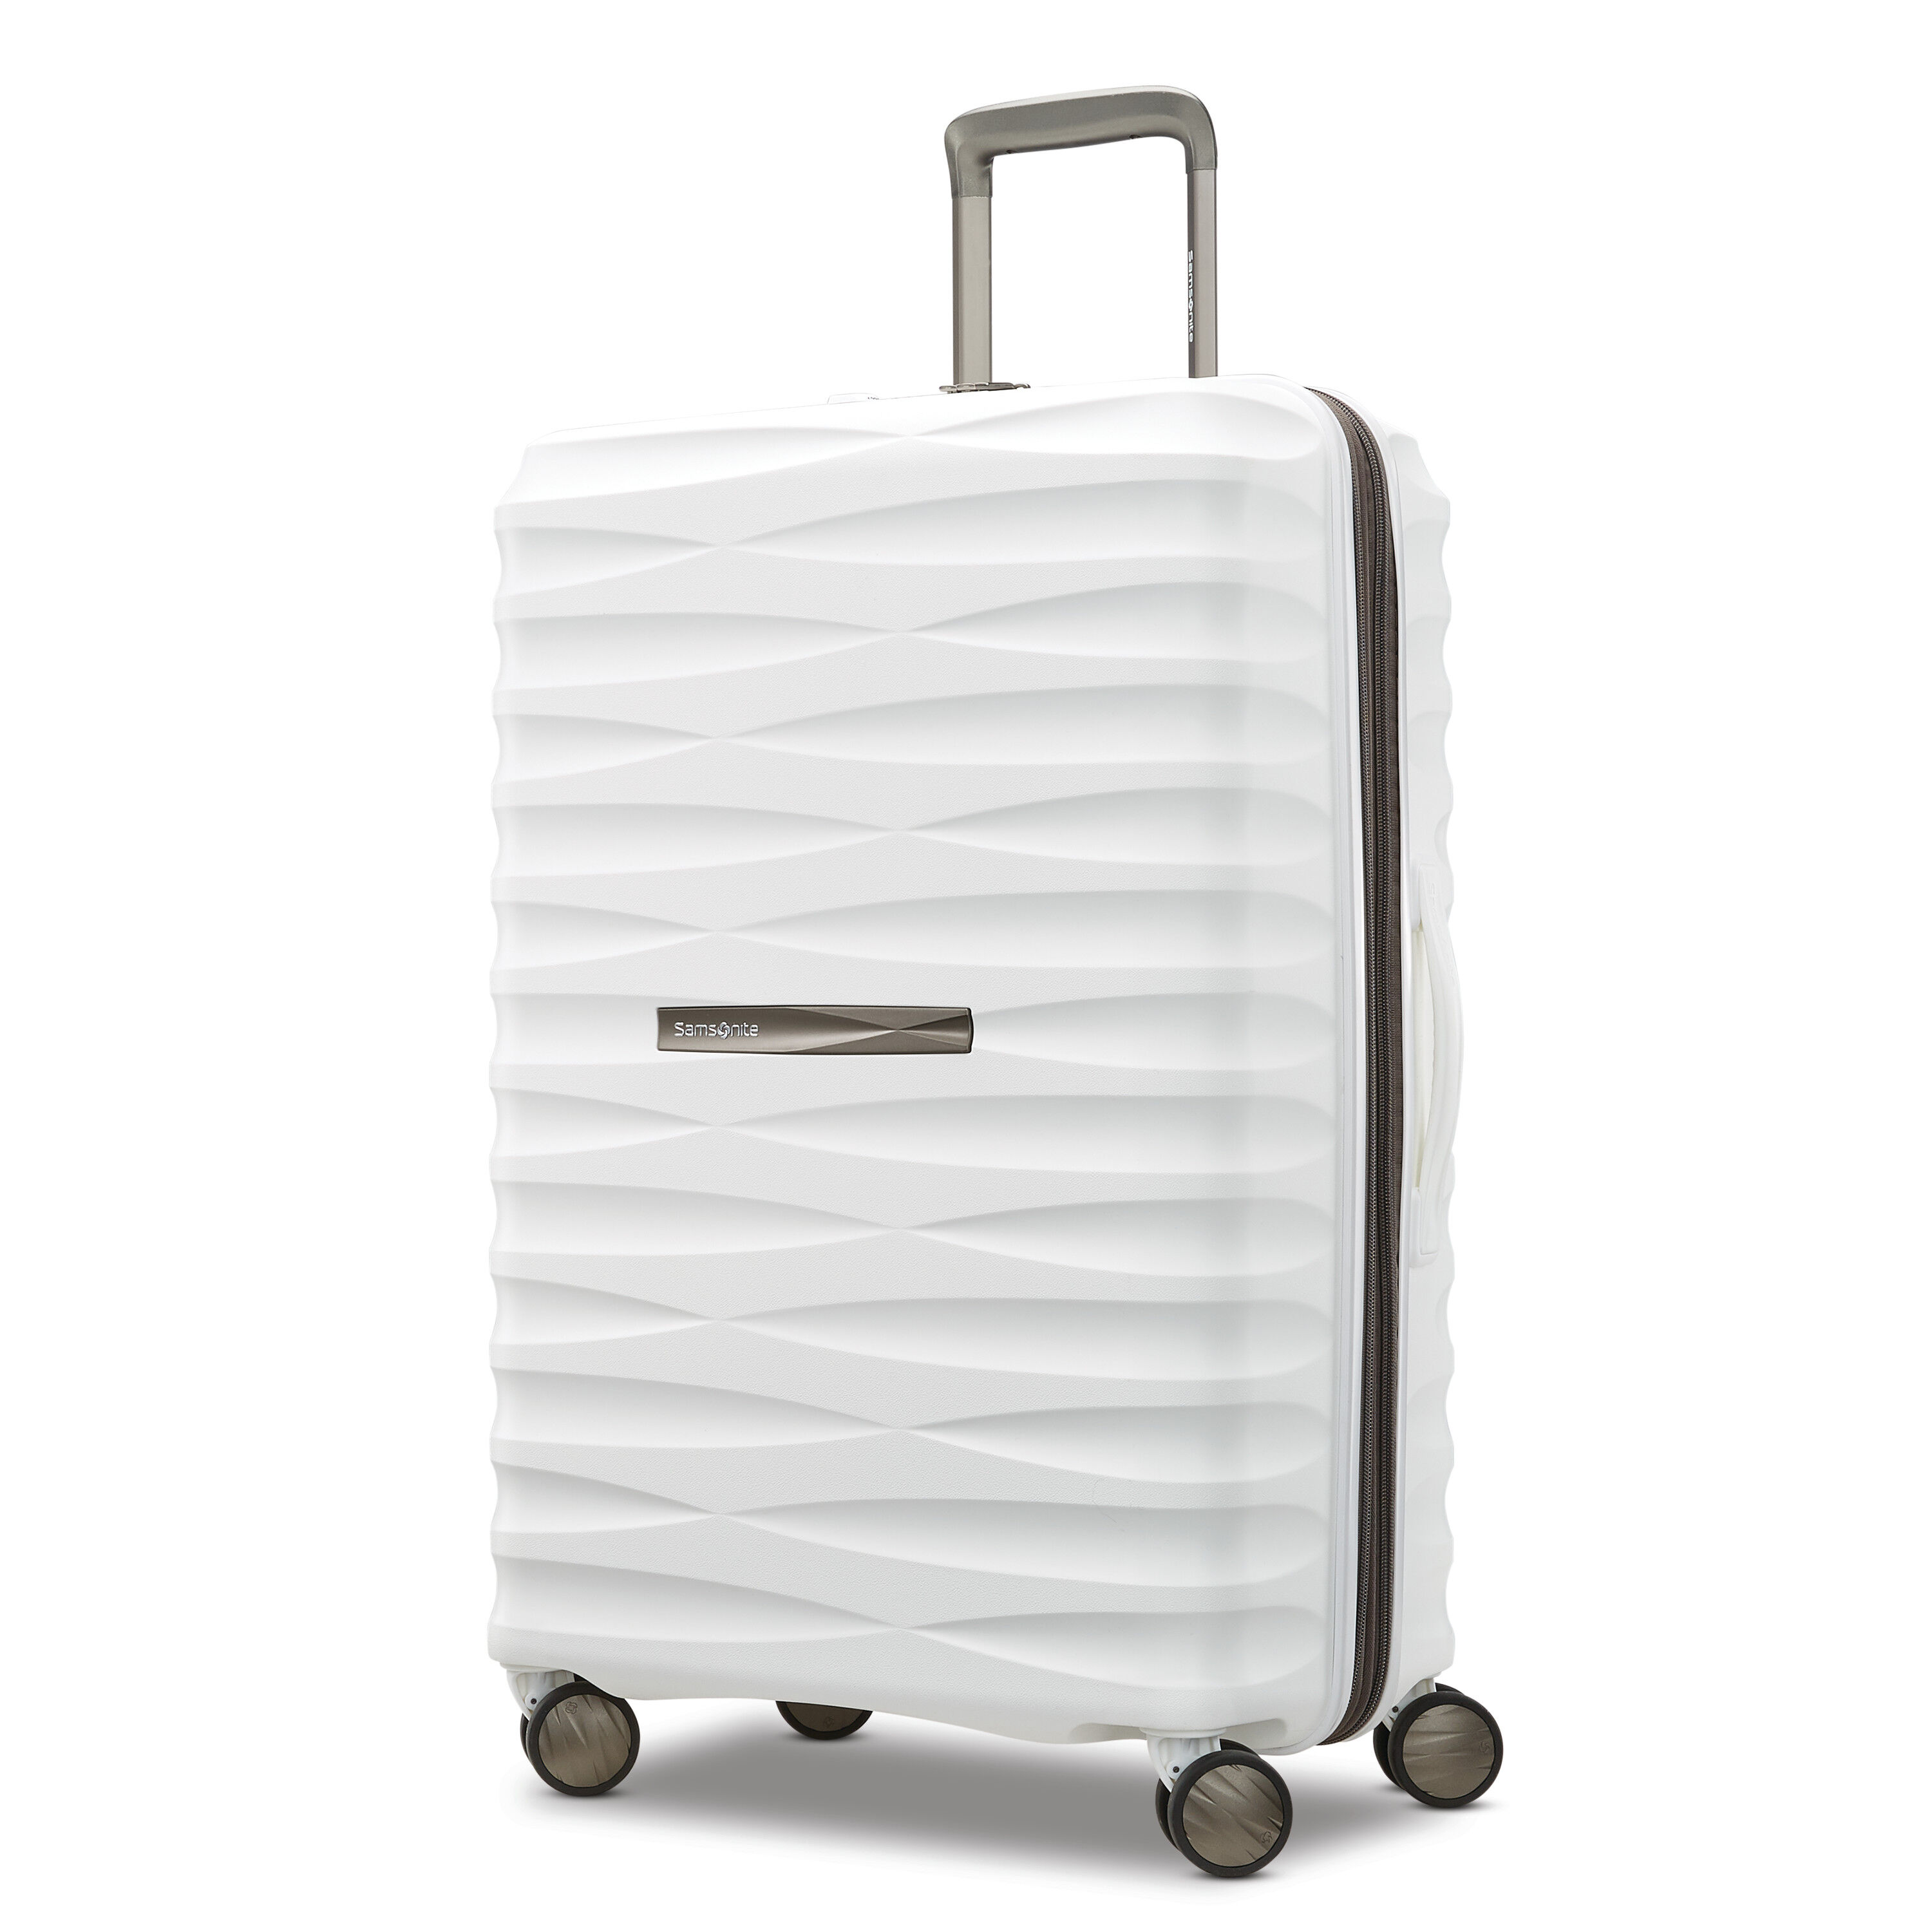 Real White Marble Half Pastel Mint Green Luggage Tags Suitcase Labels Bag Travel Accessories Set of 2